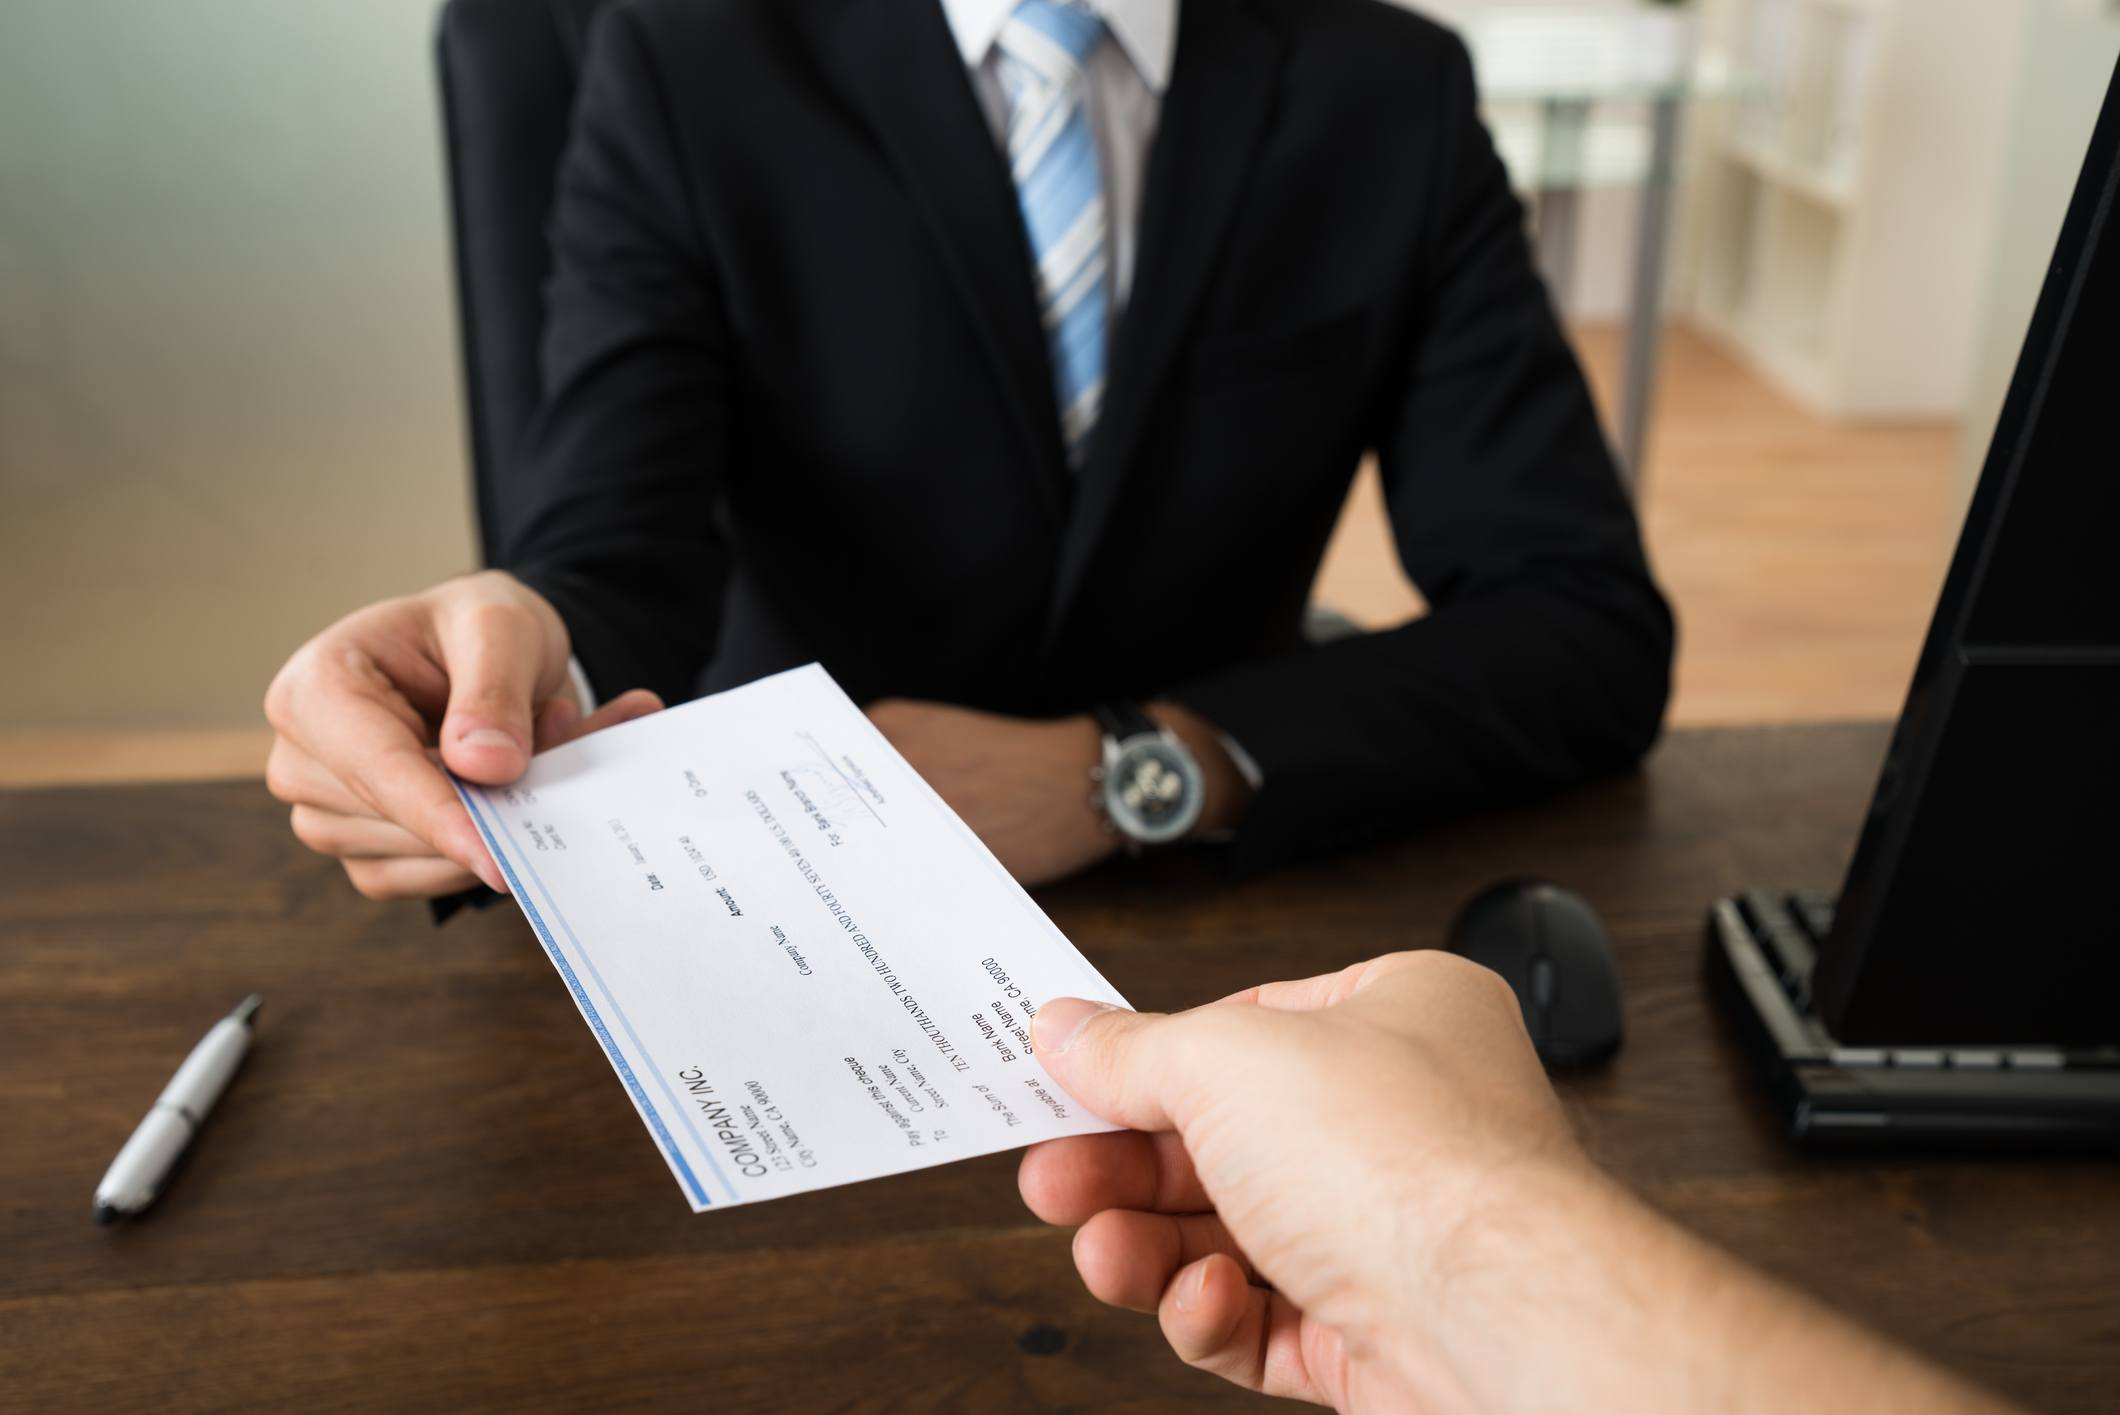 Man handing over a paycheck